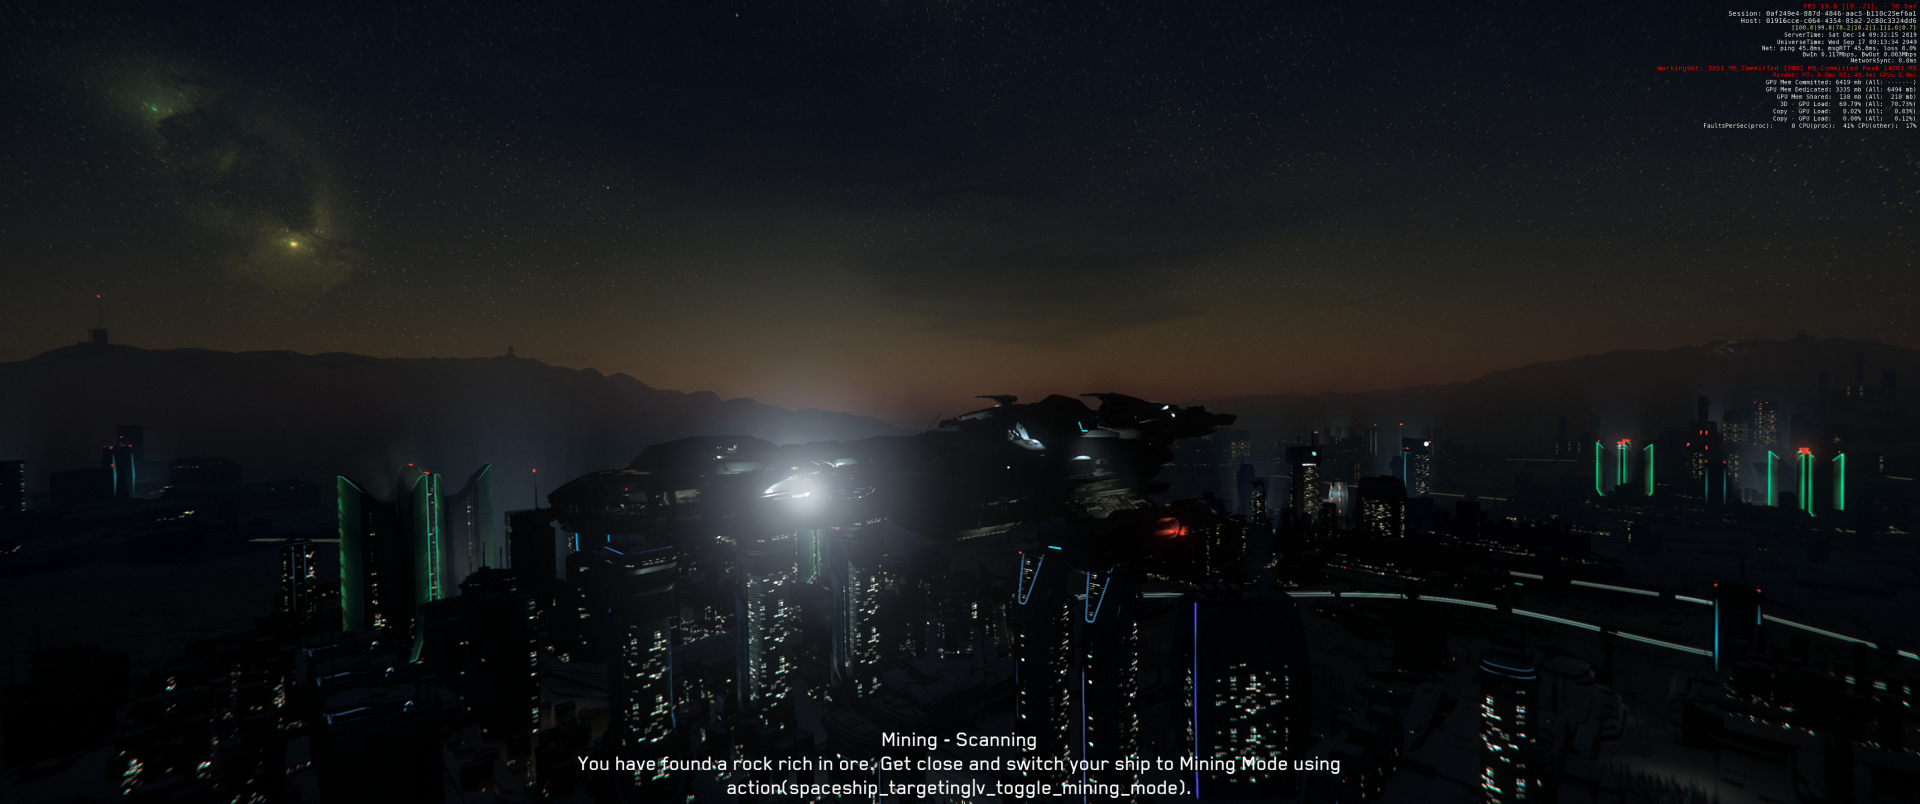 Squadron 42 - Star Citizen Screenshot 2019.12.14 - 10.31.15.44.png